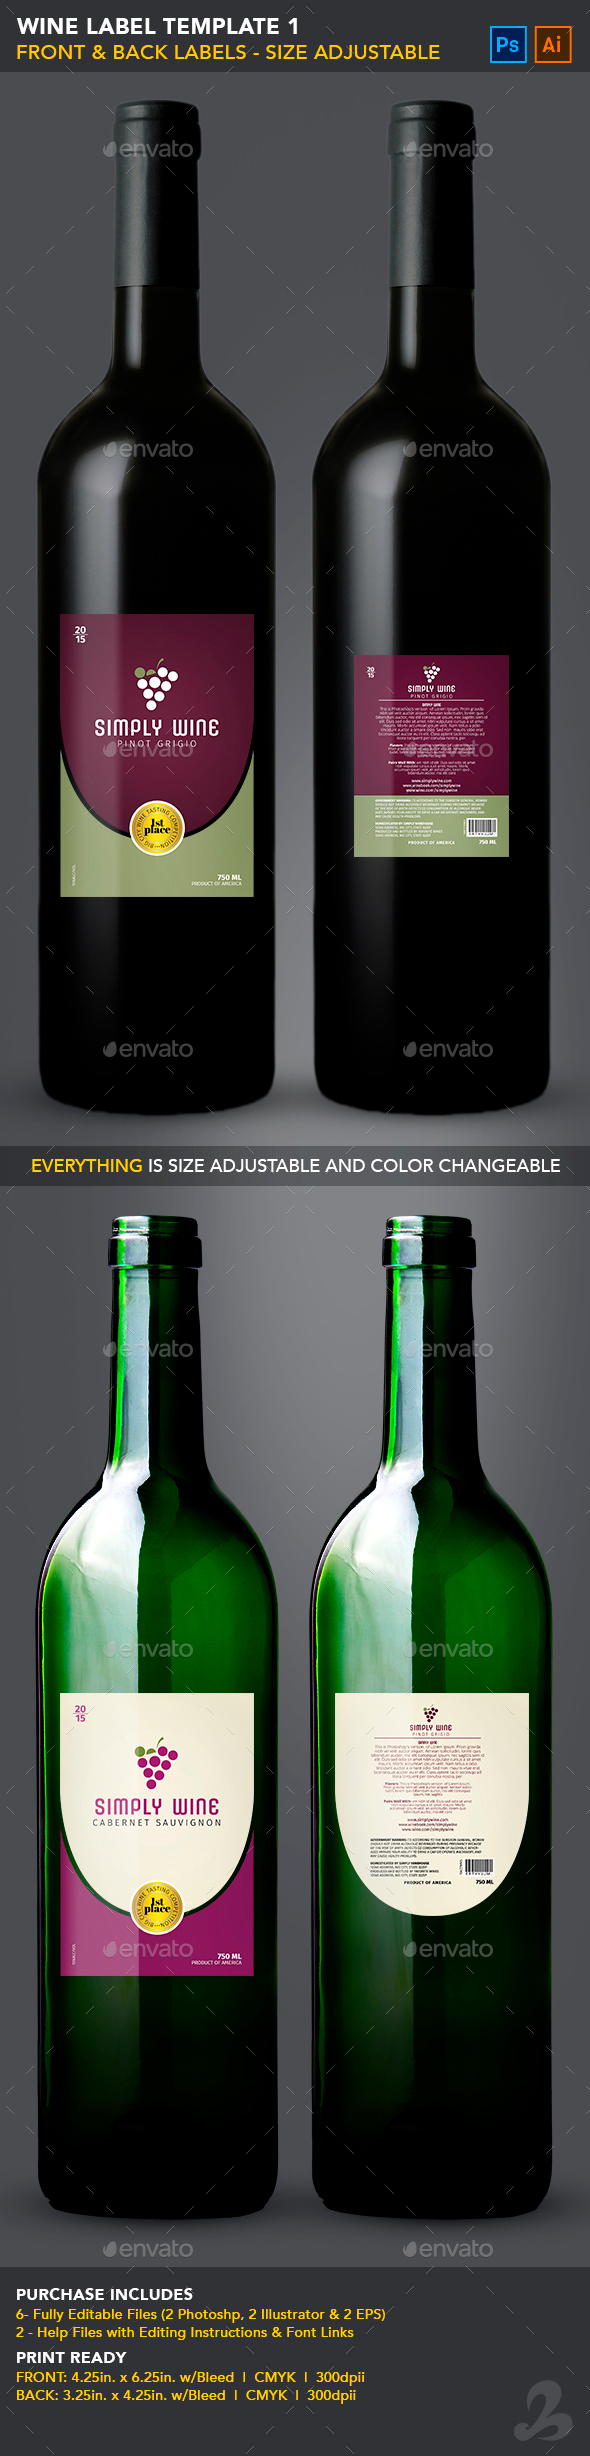 Simple Wine Label Templates By CreativB GraphicRiver - Wine label size template